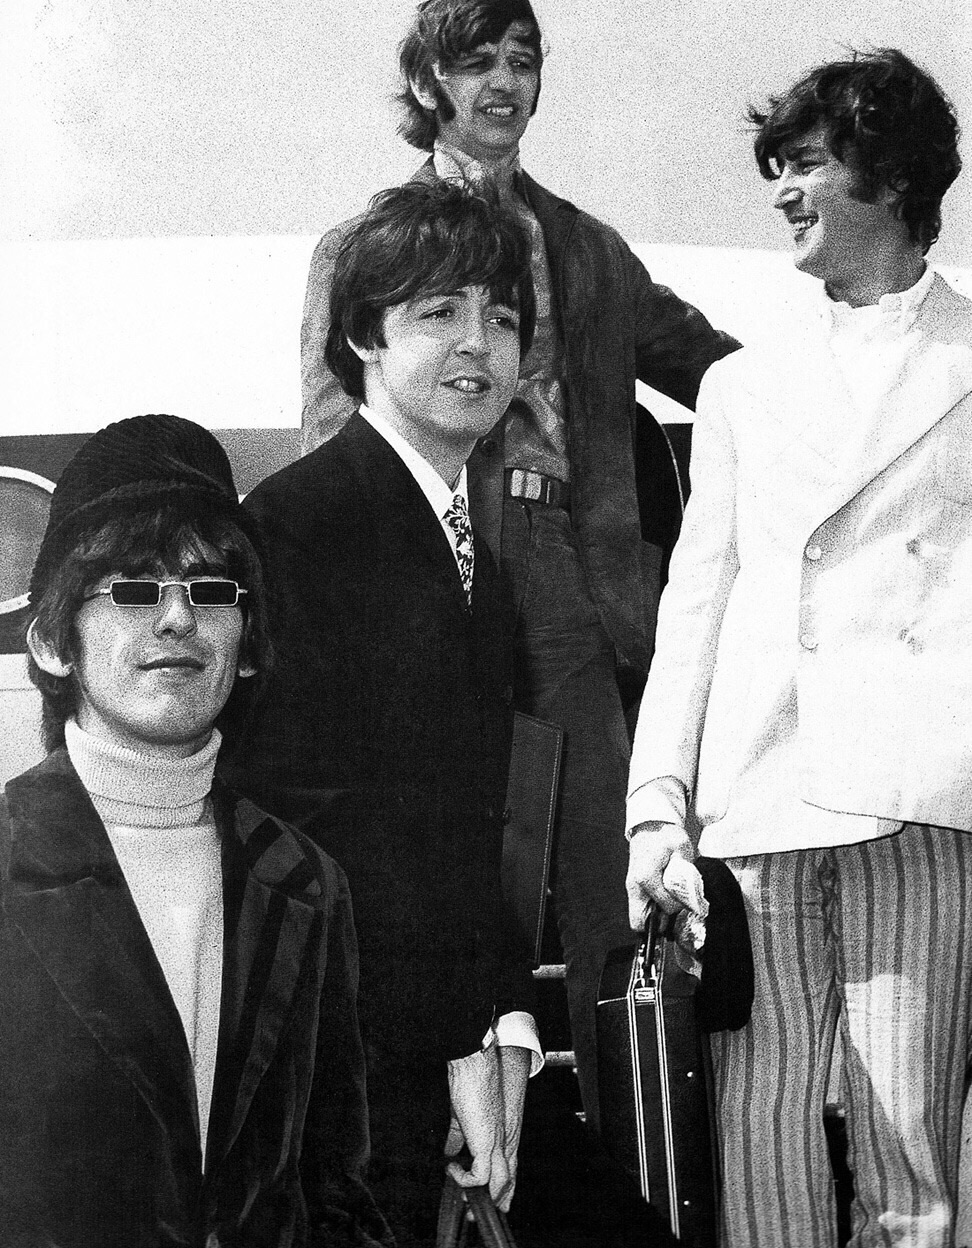 The Beatles on tour in the US, 1966.